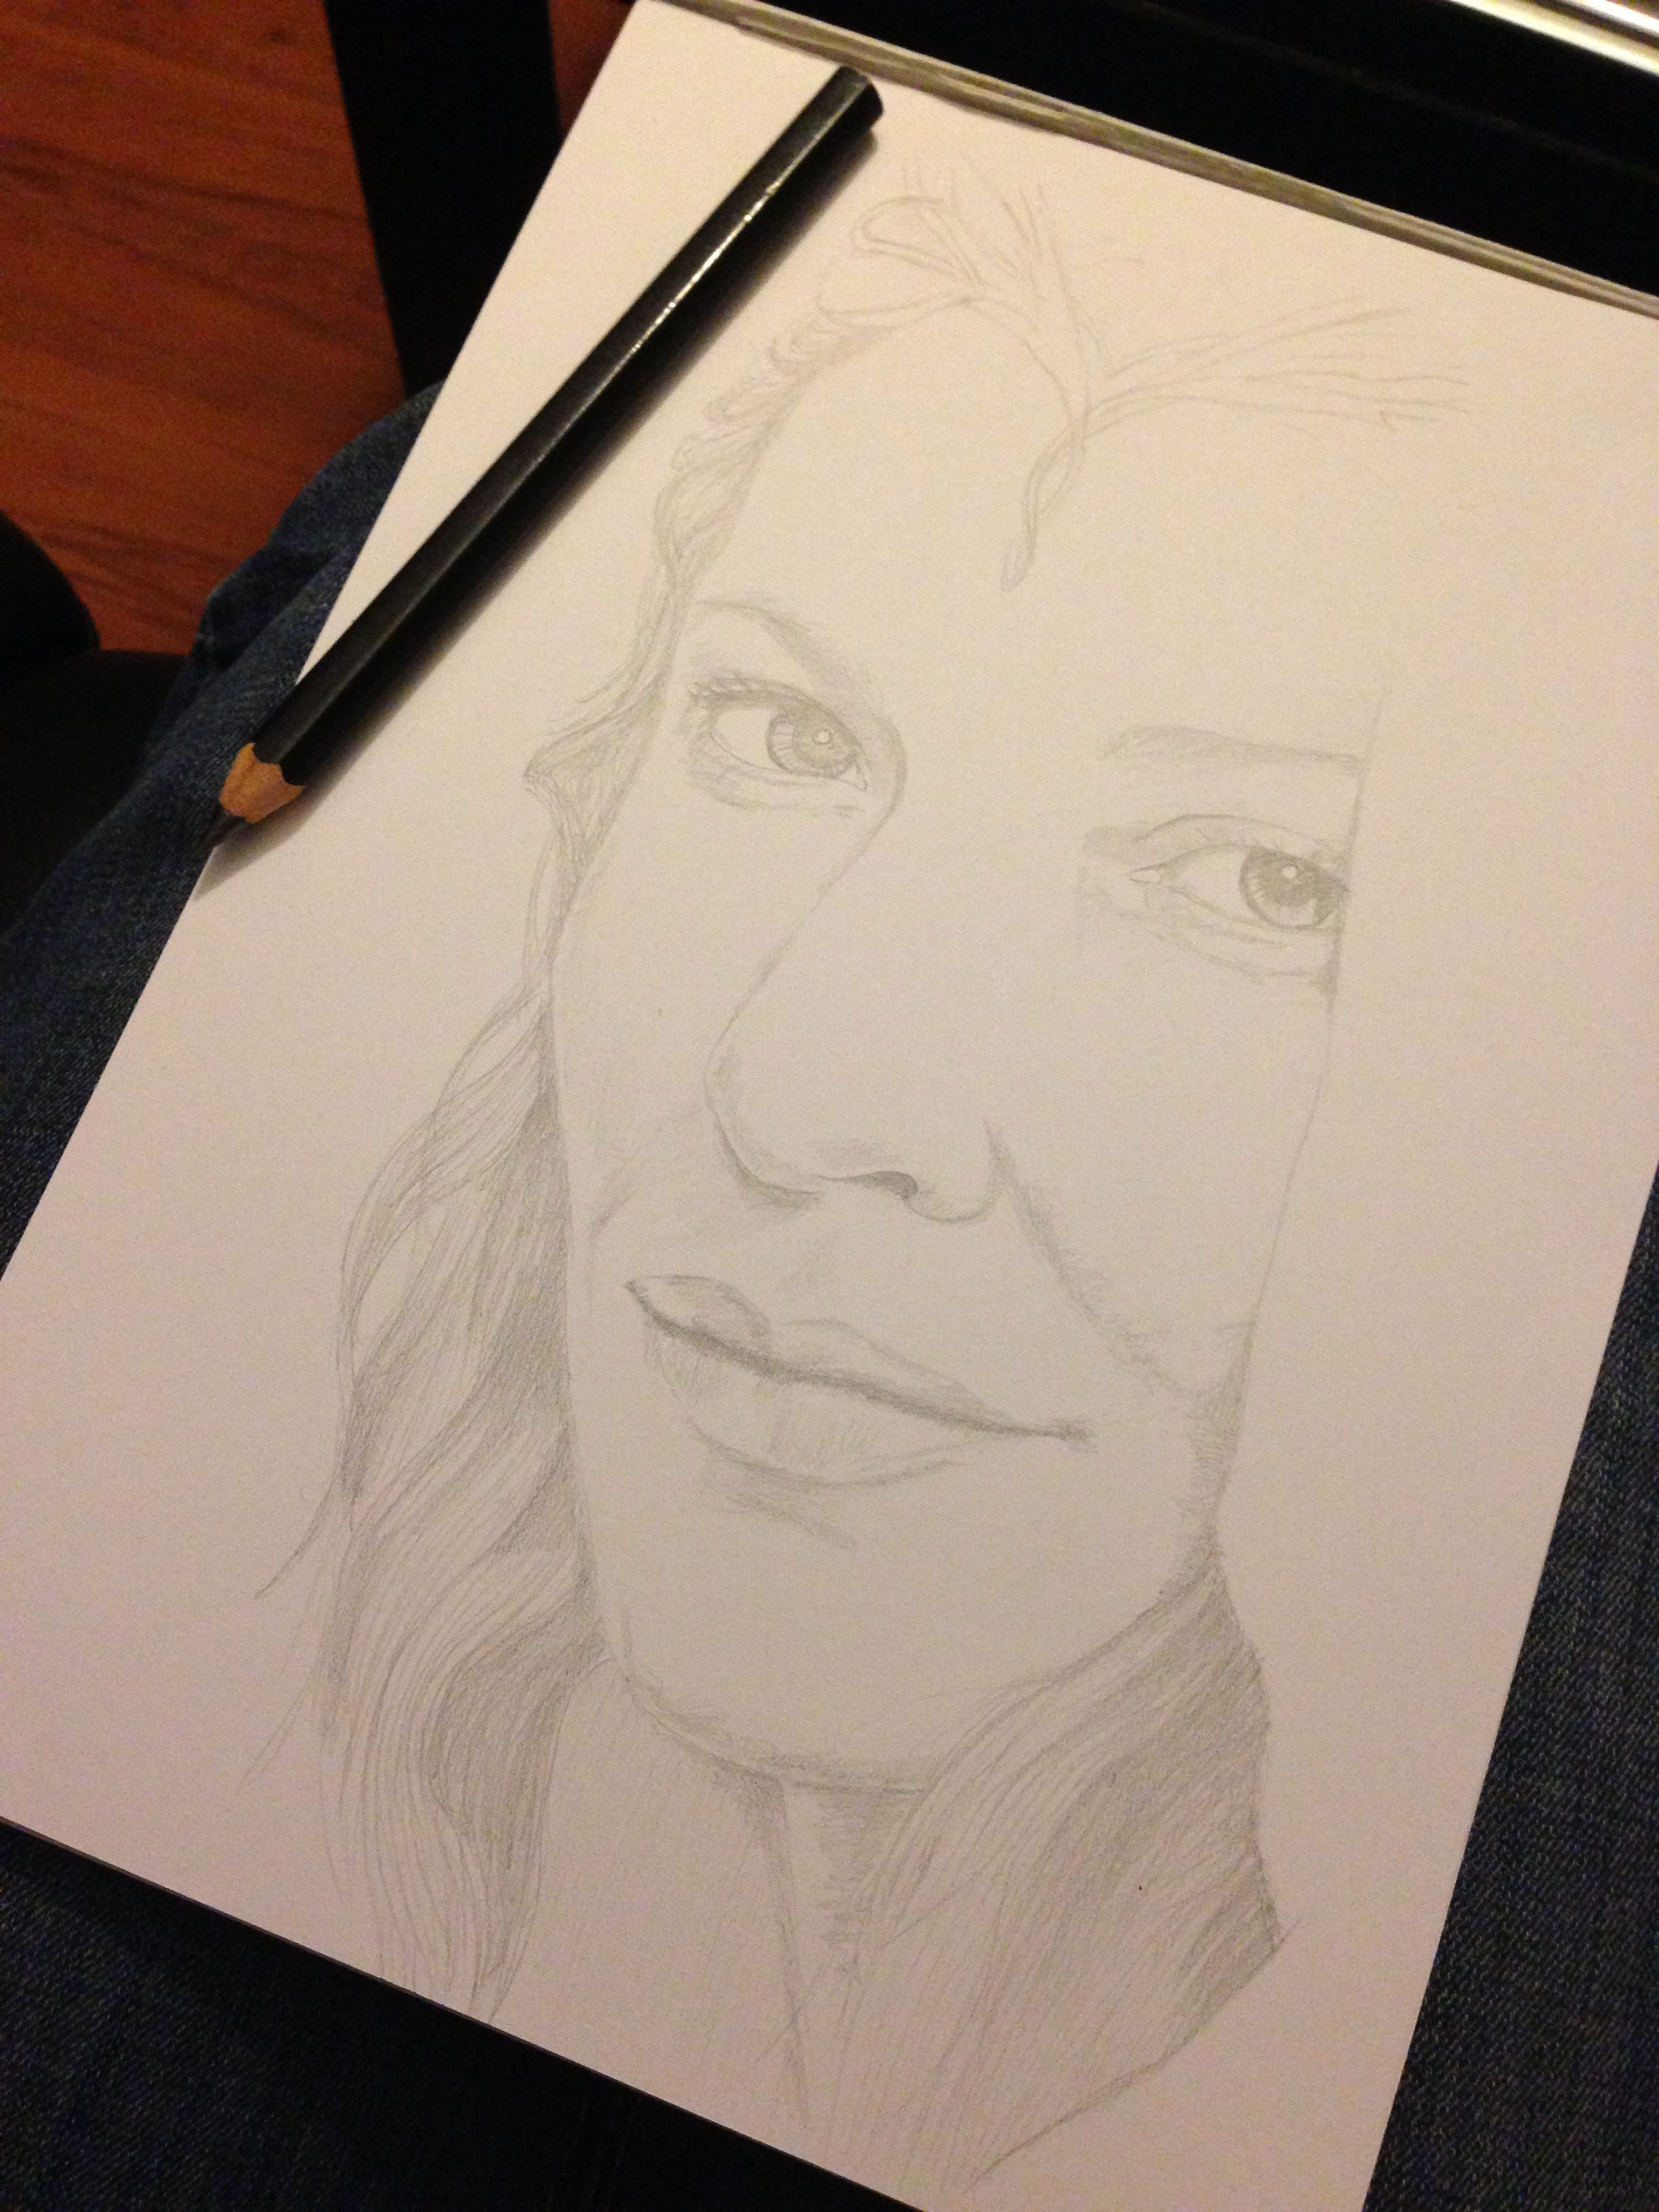 sketch of galadriel from lord of the rings pencils